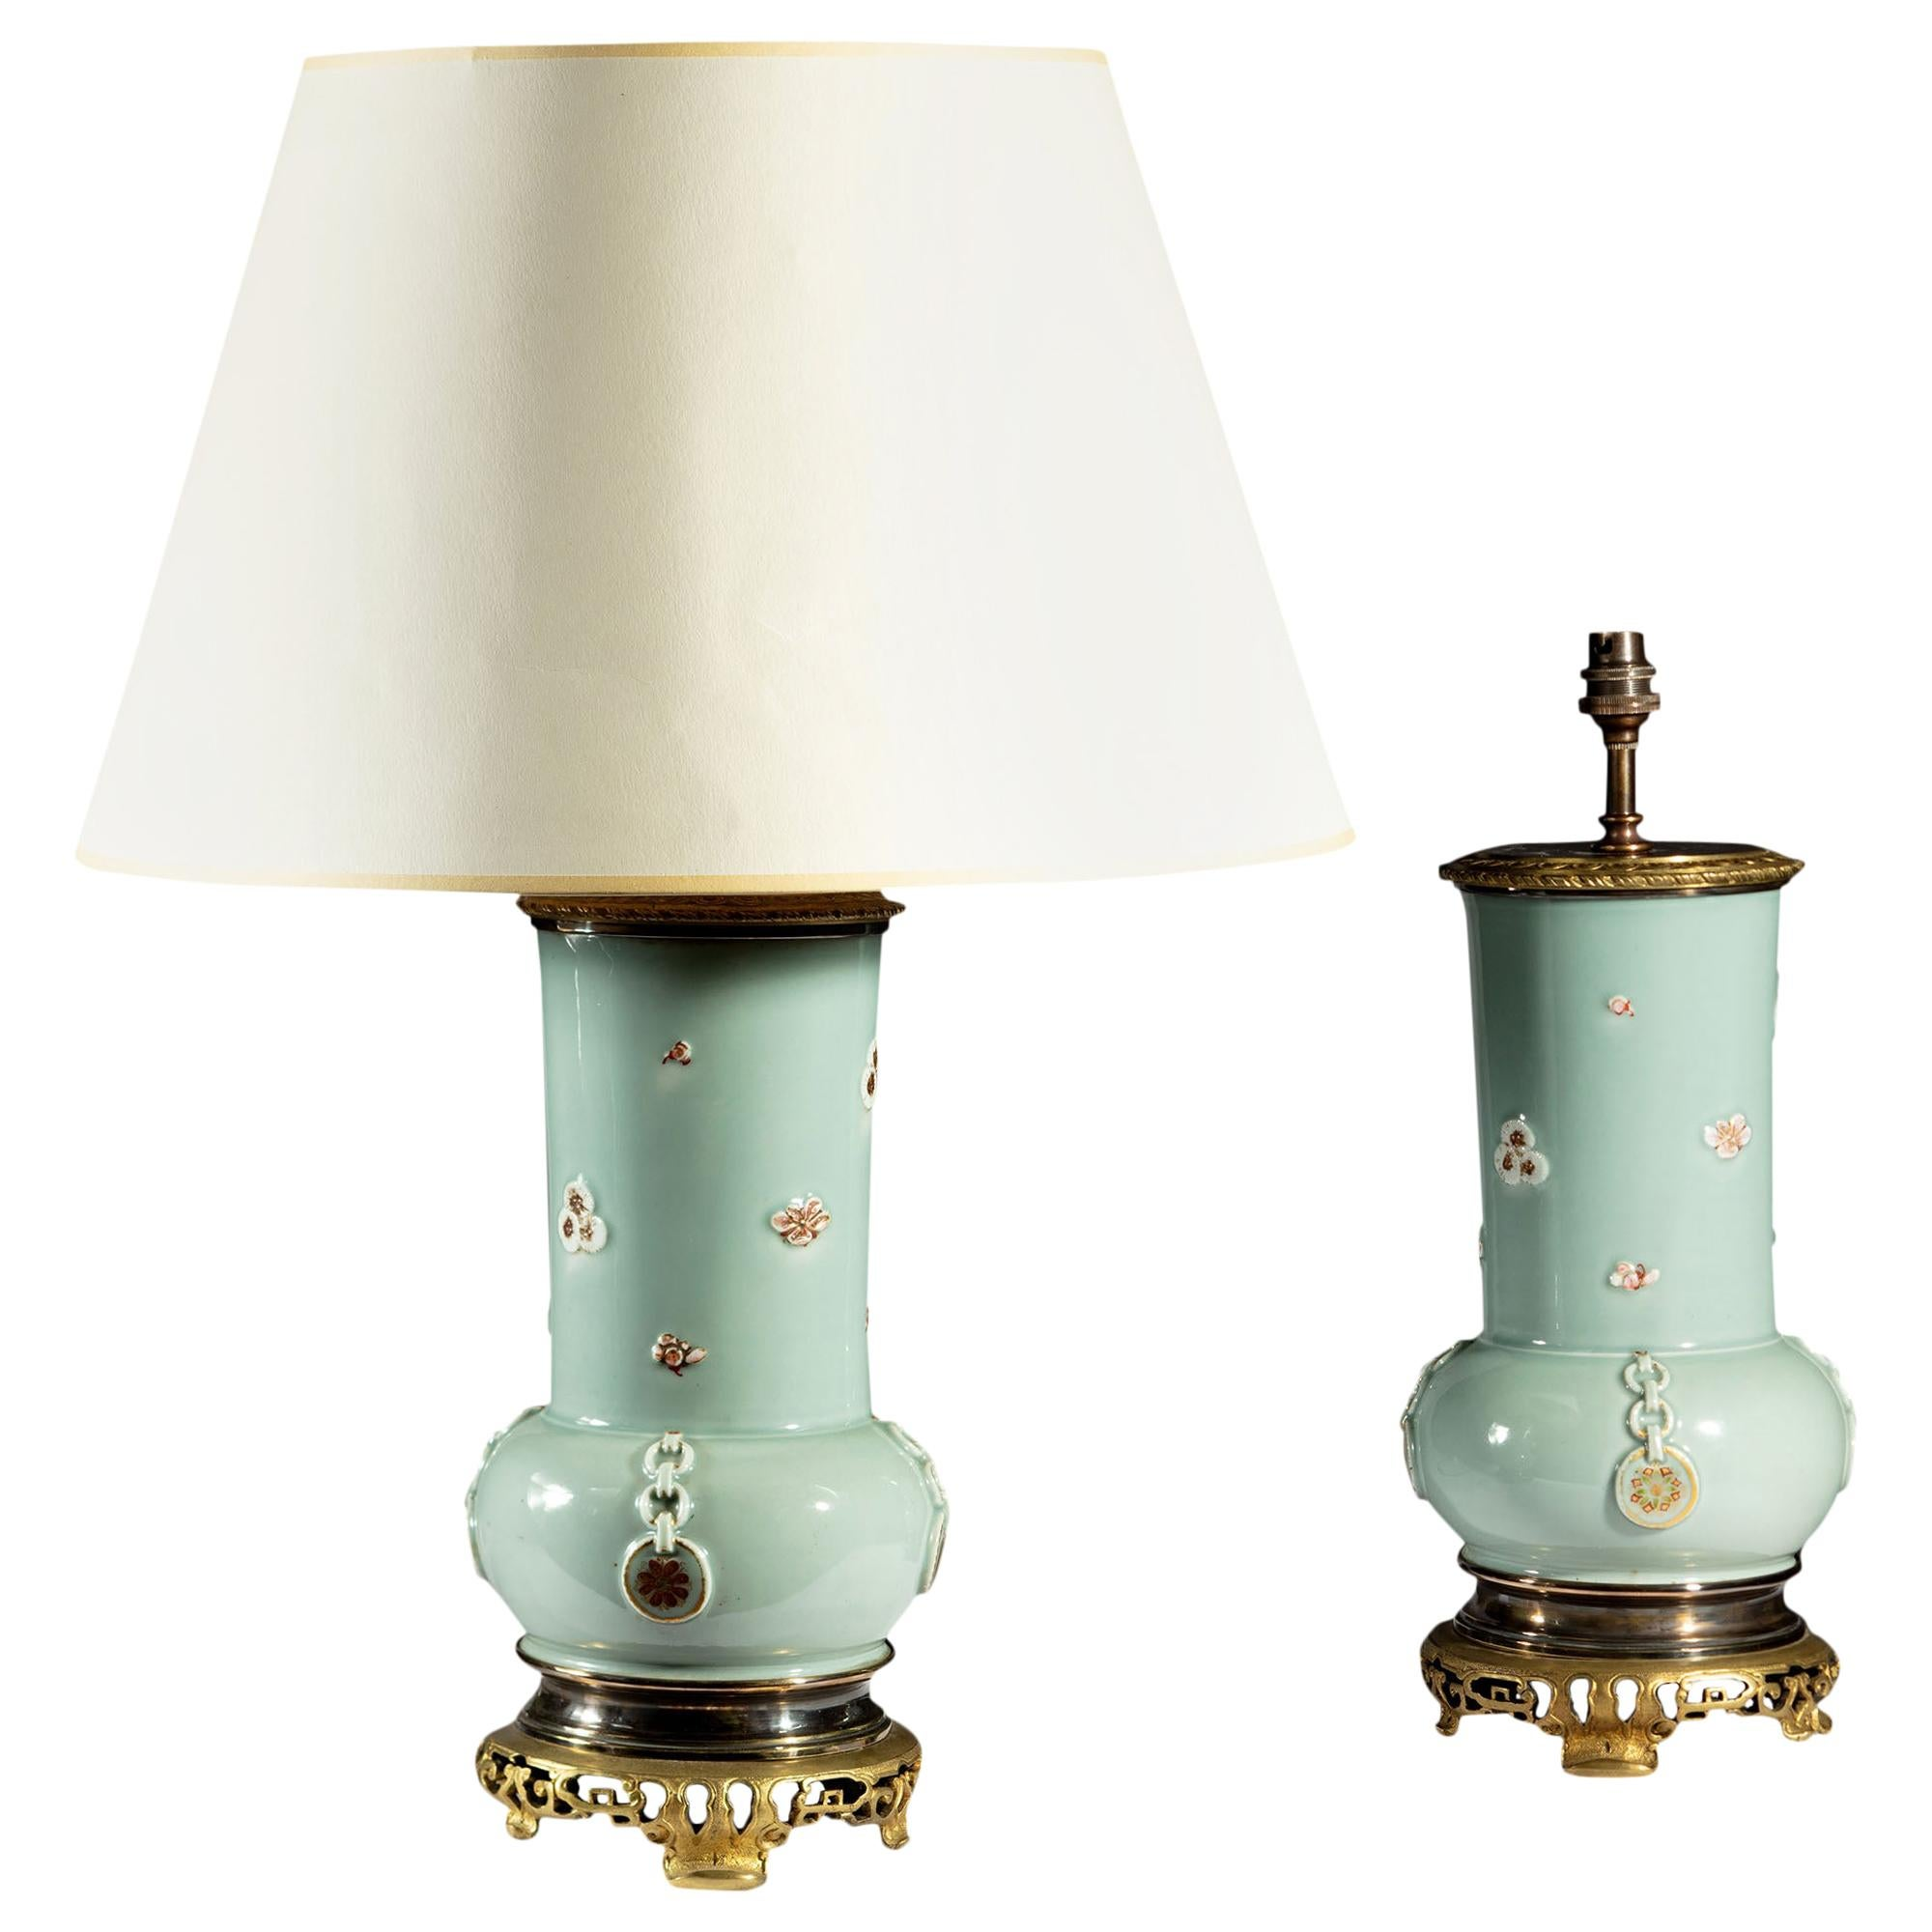 Pair of Late 19th Century Japanese Celadon Vases as Table Lamps with Mounts